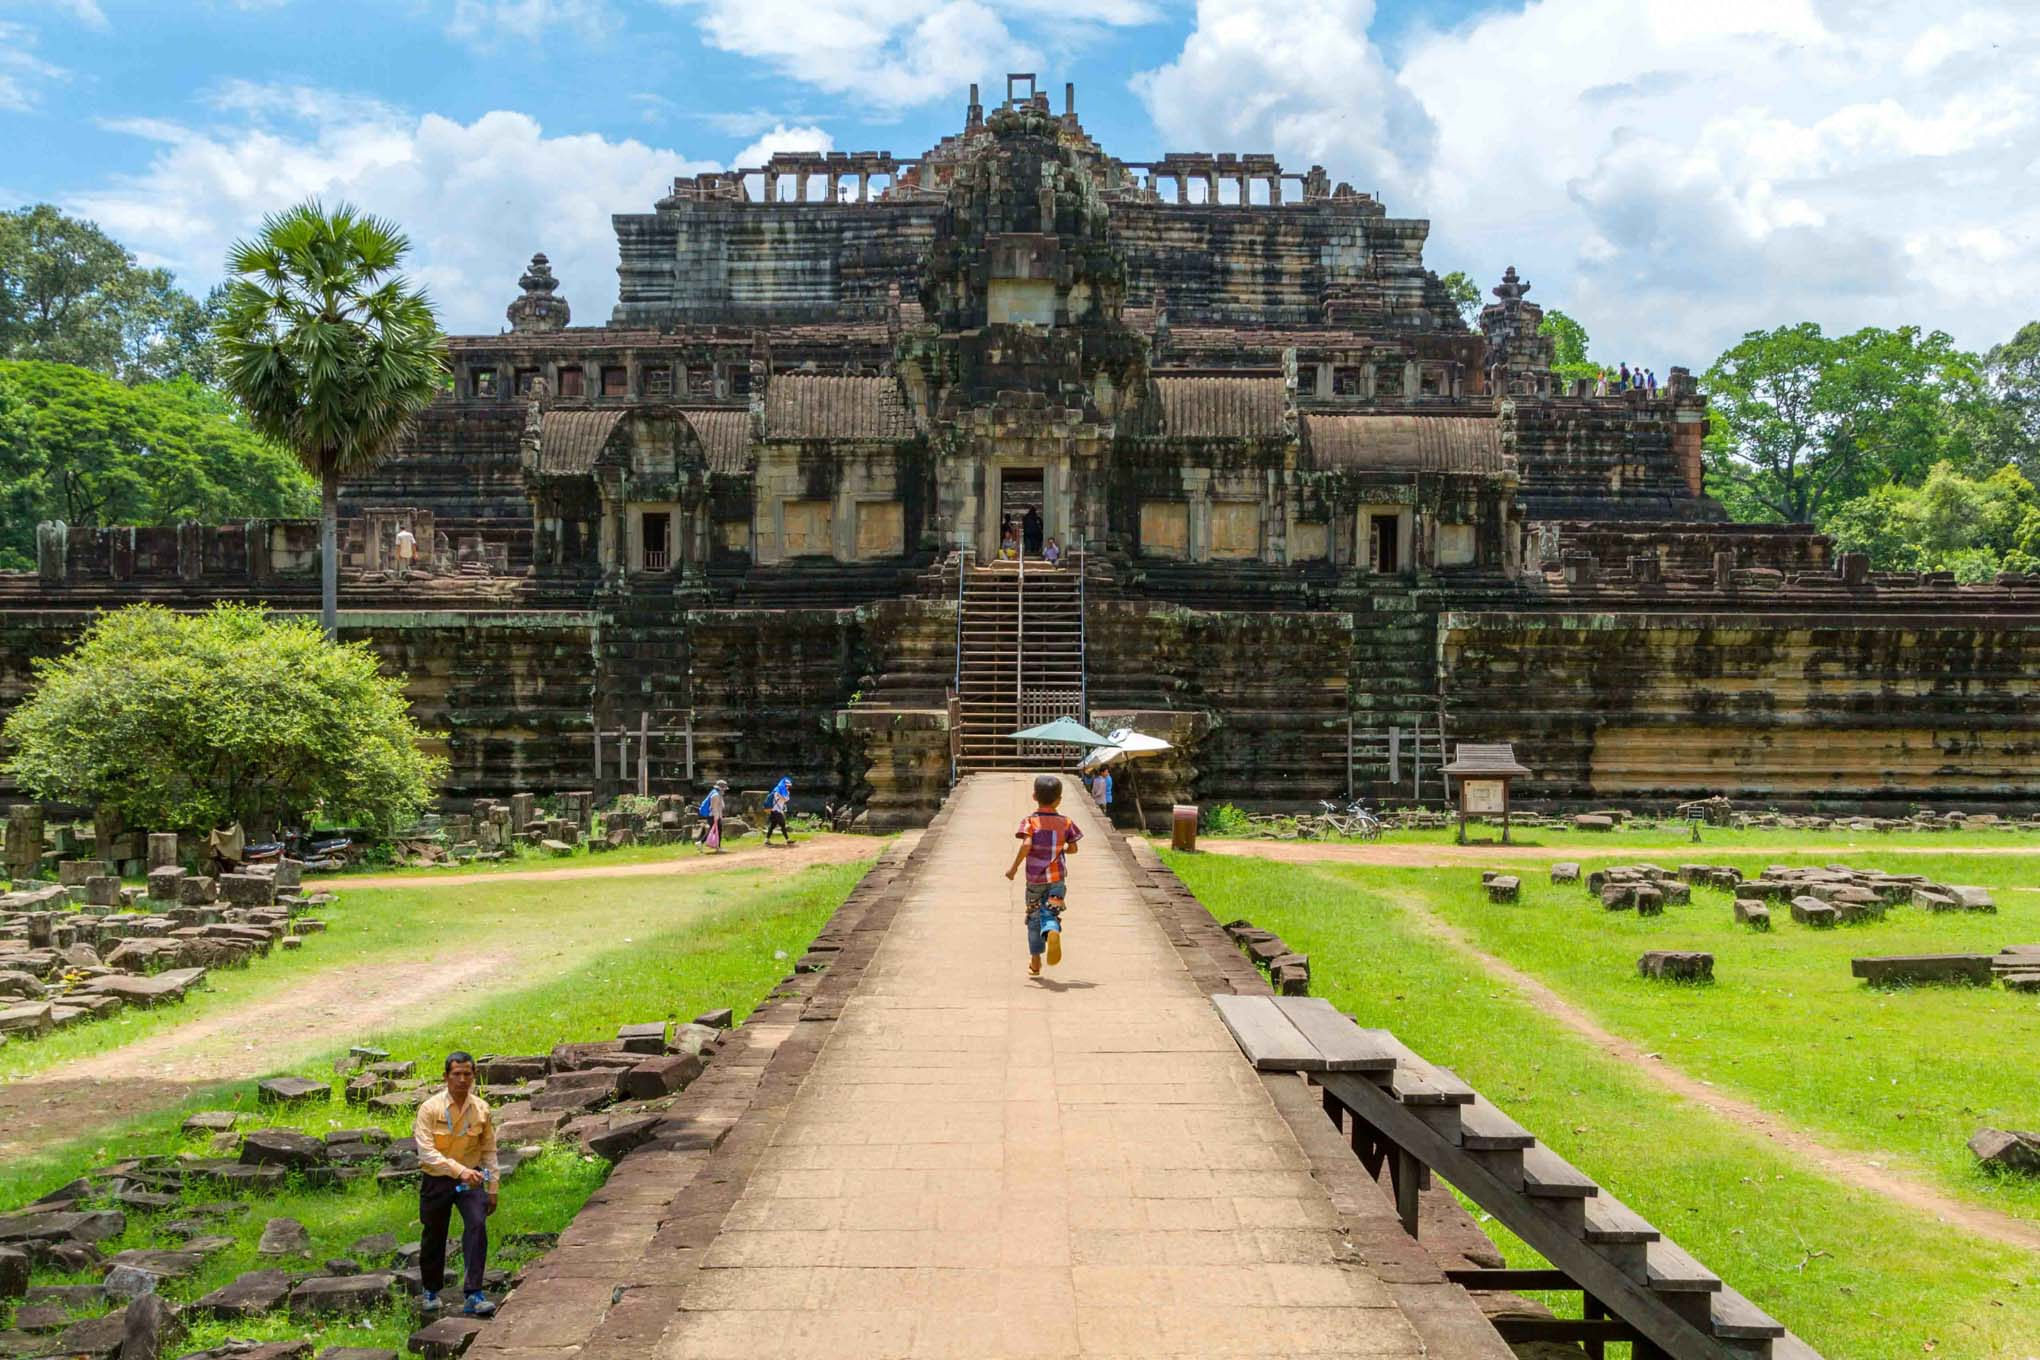 Angkor Wat Temple Complex Siem Reap Cambodia